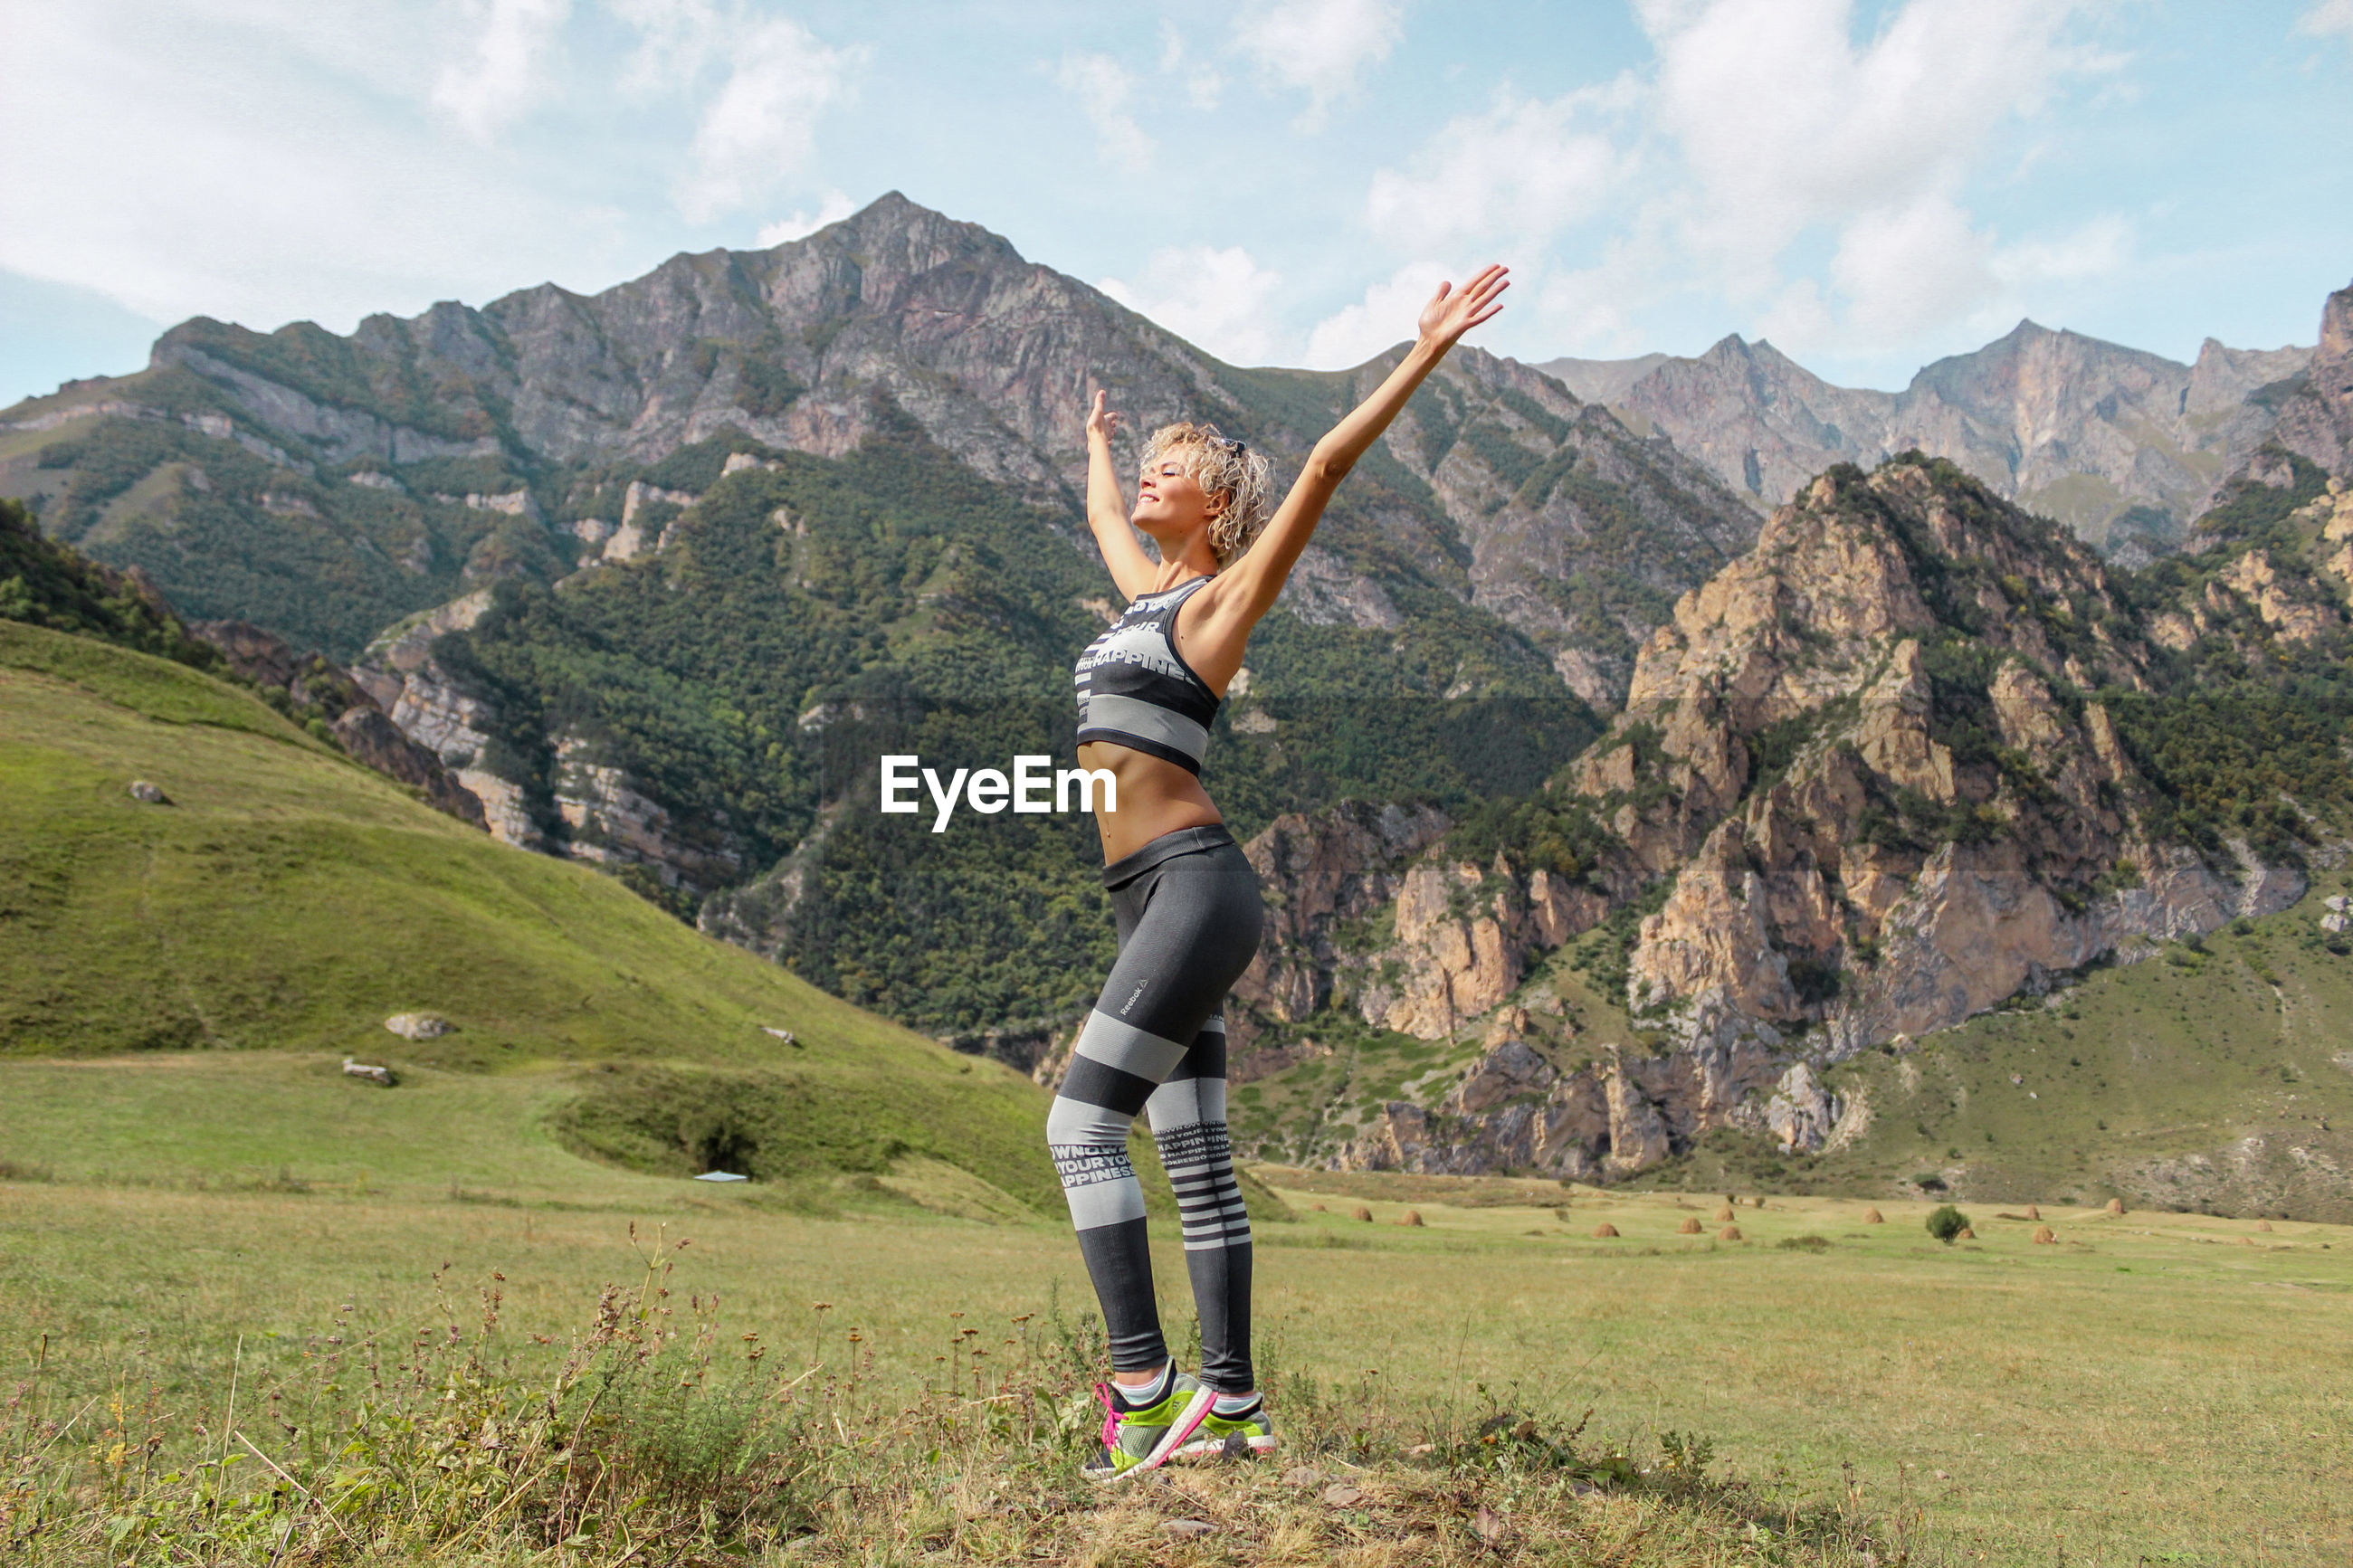 Woman in sports clothes with arms raised on mountain against sky